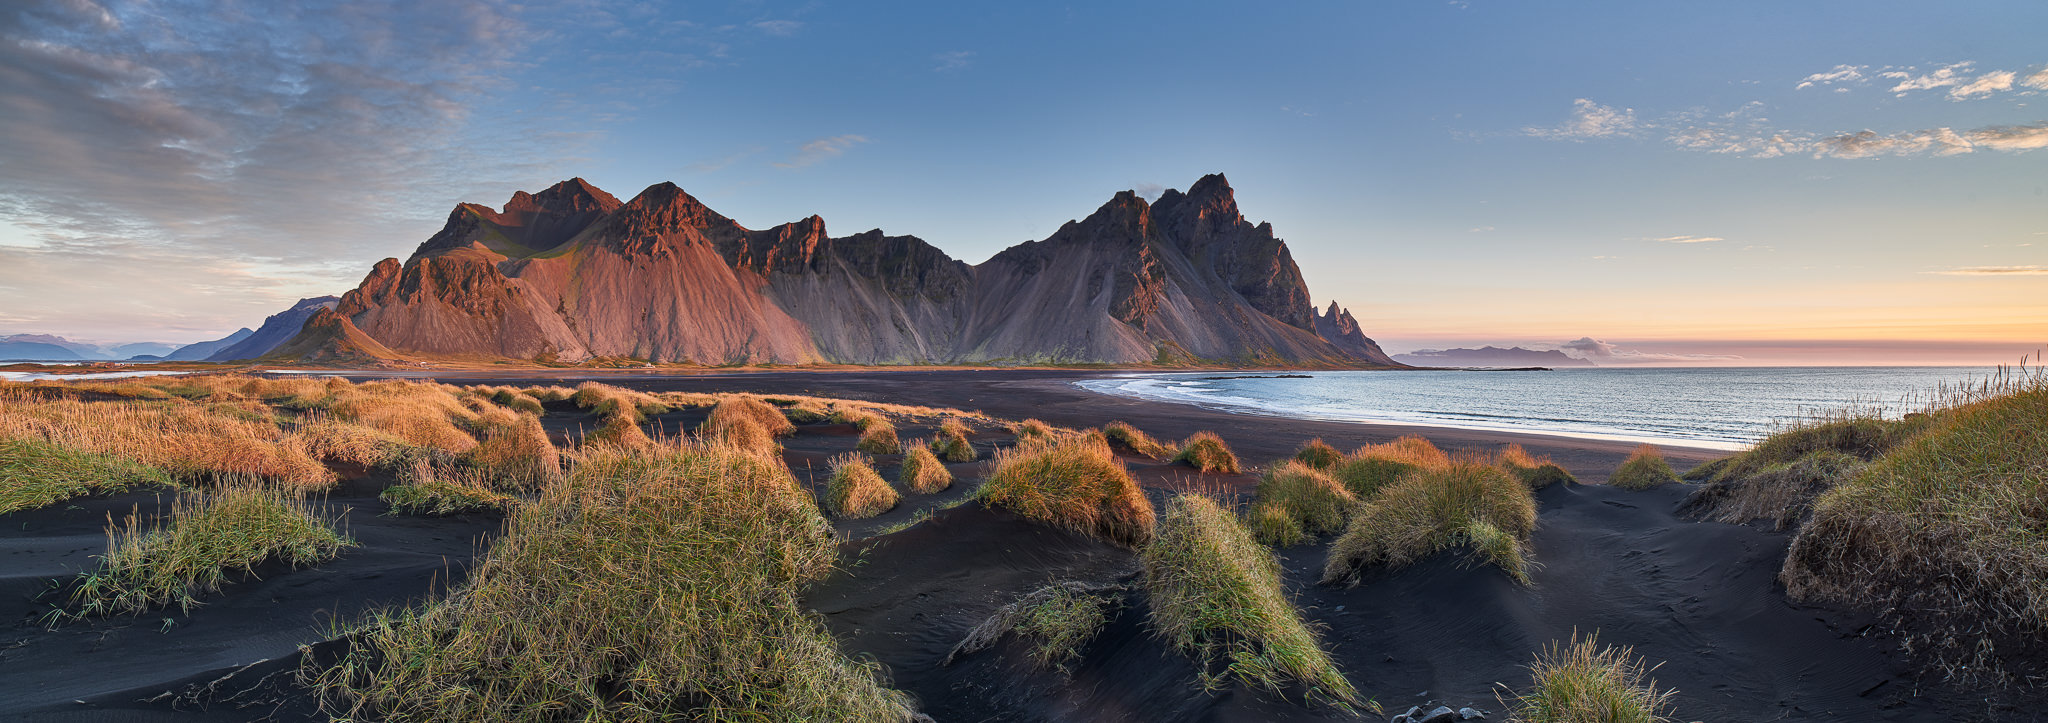 Vestrahorn Best Photo Spots